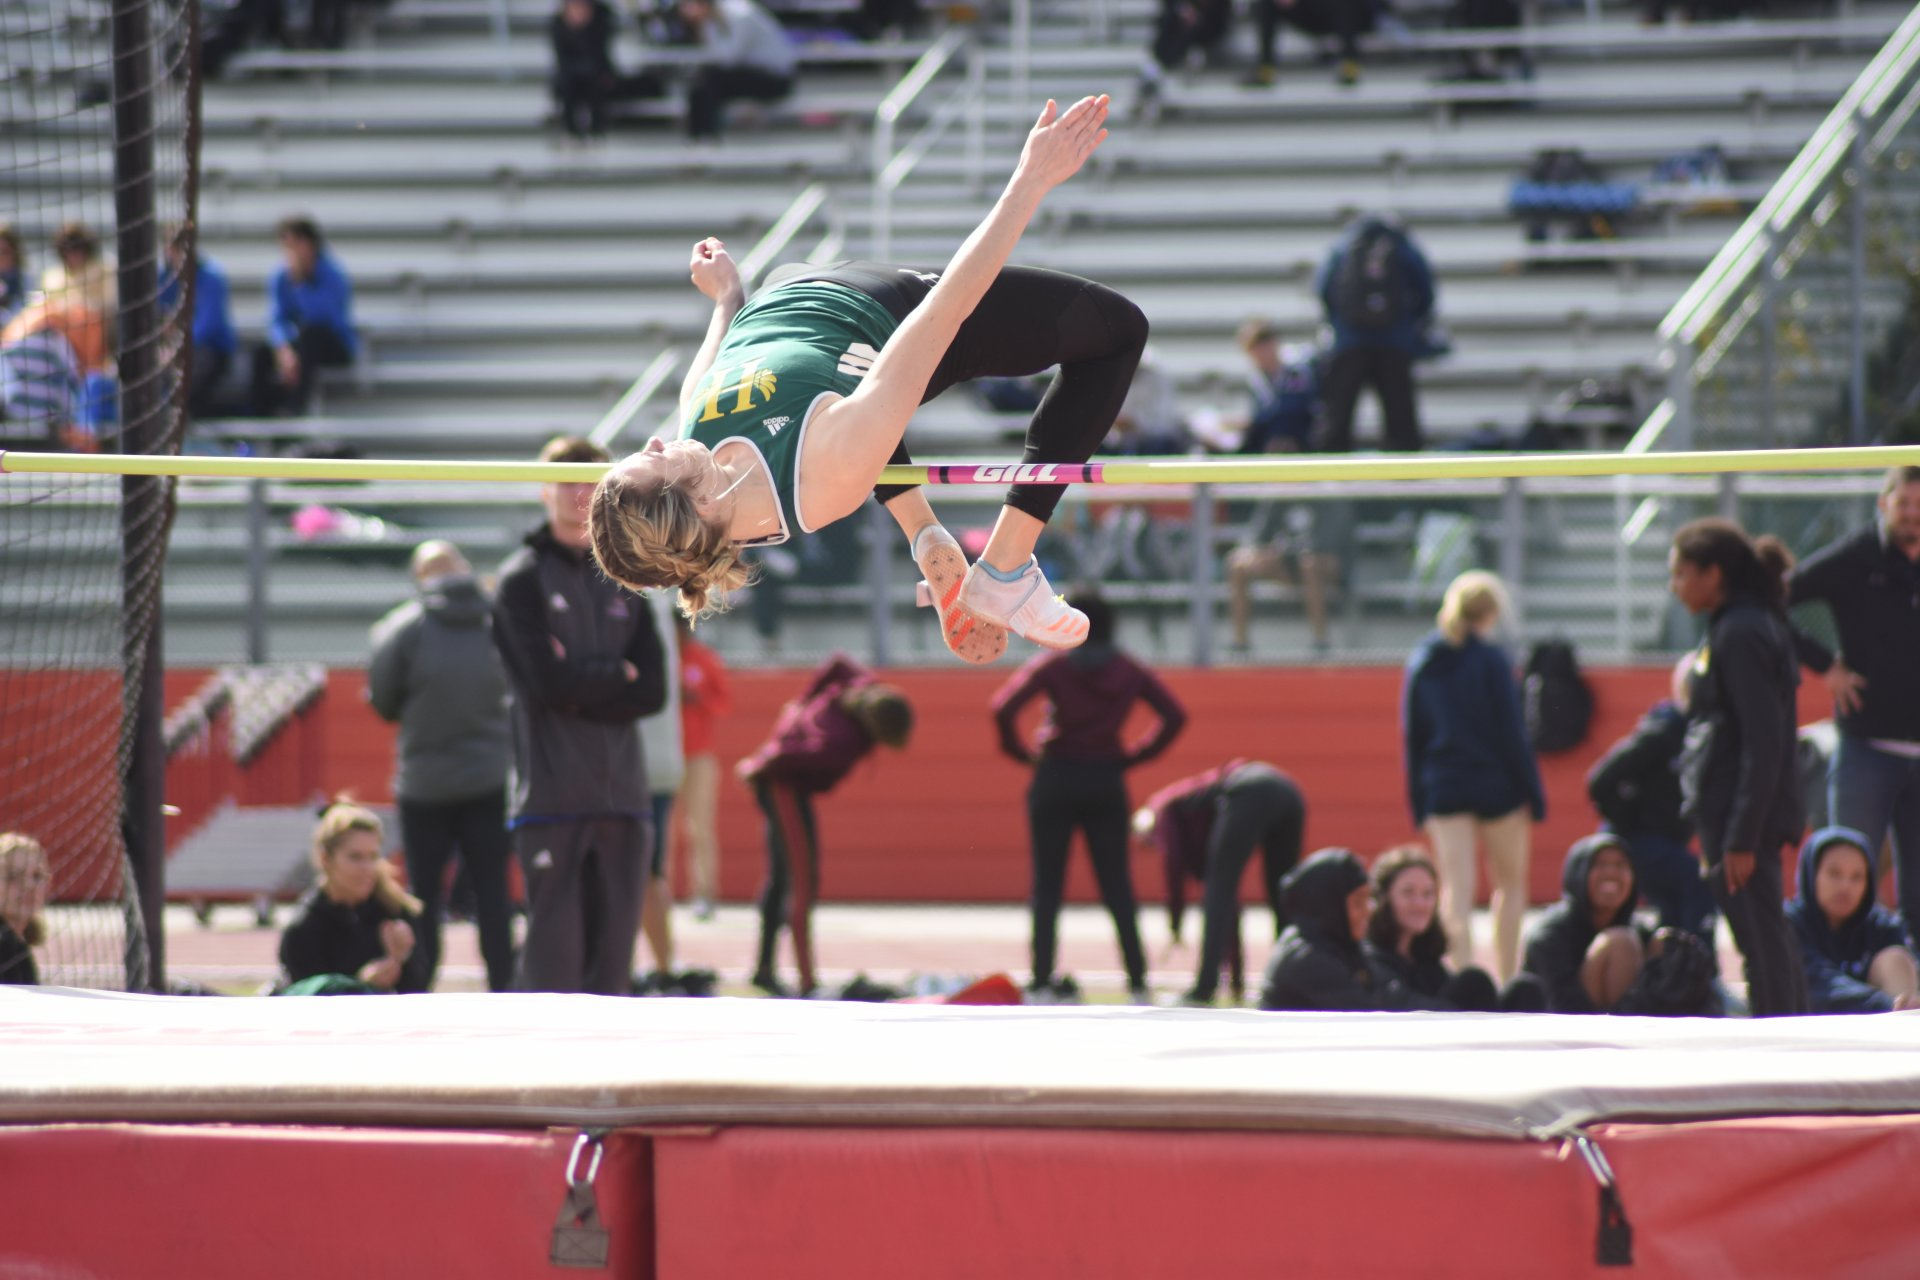 Humboldt State senior Brailee VandenBoom during the women's high jump at the 2020 Kim Duyst Invitational March 7 at Stanislaus State University. | Photo by Elliott Portillo